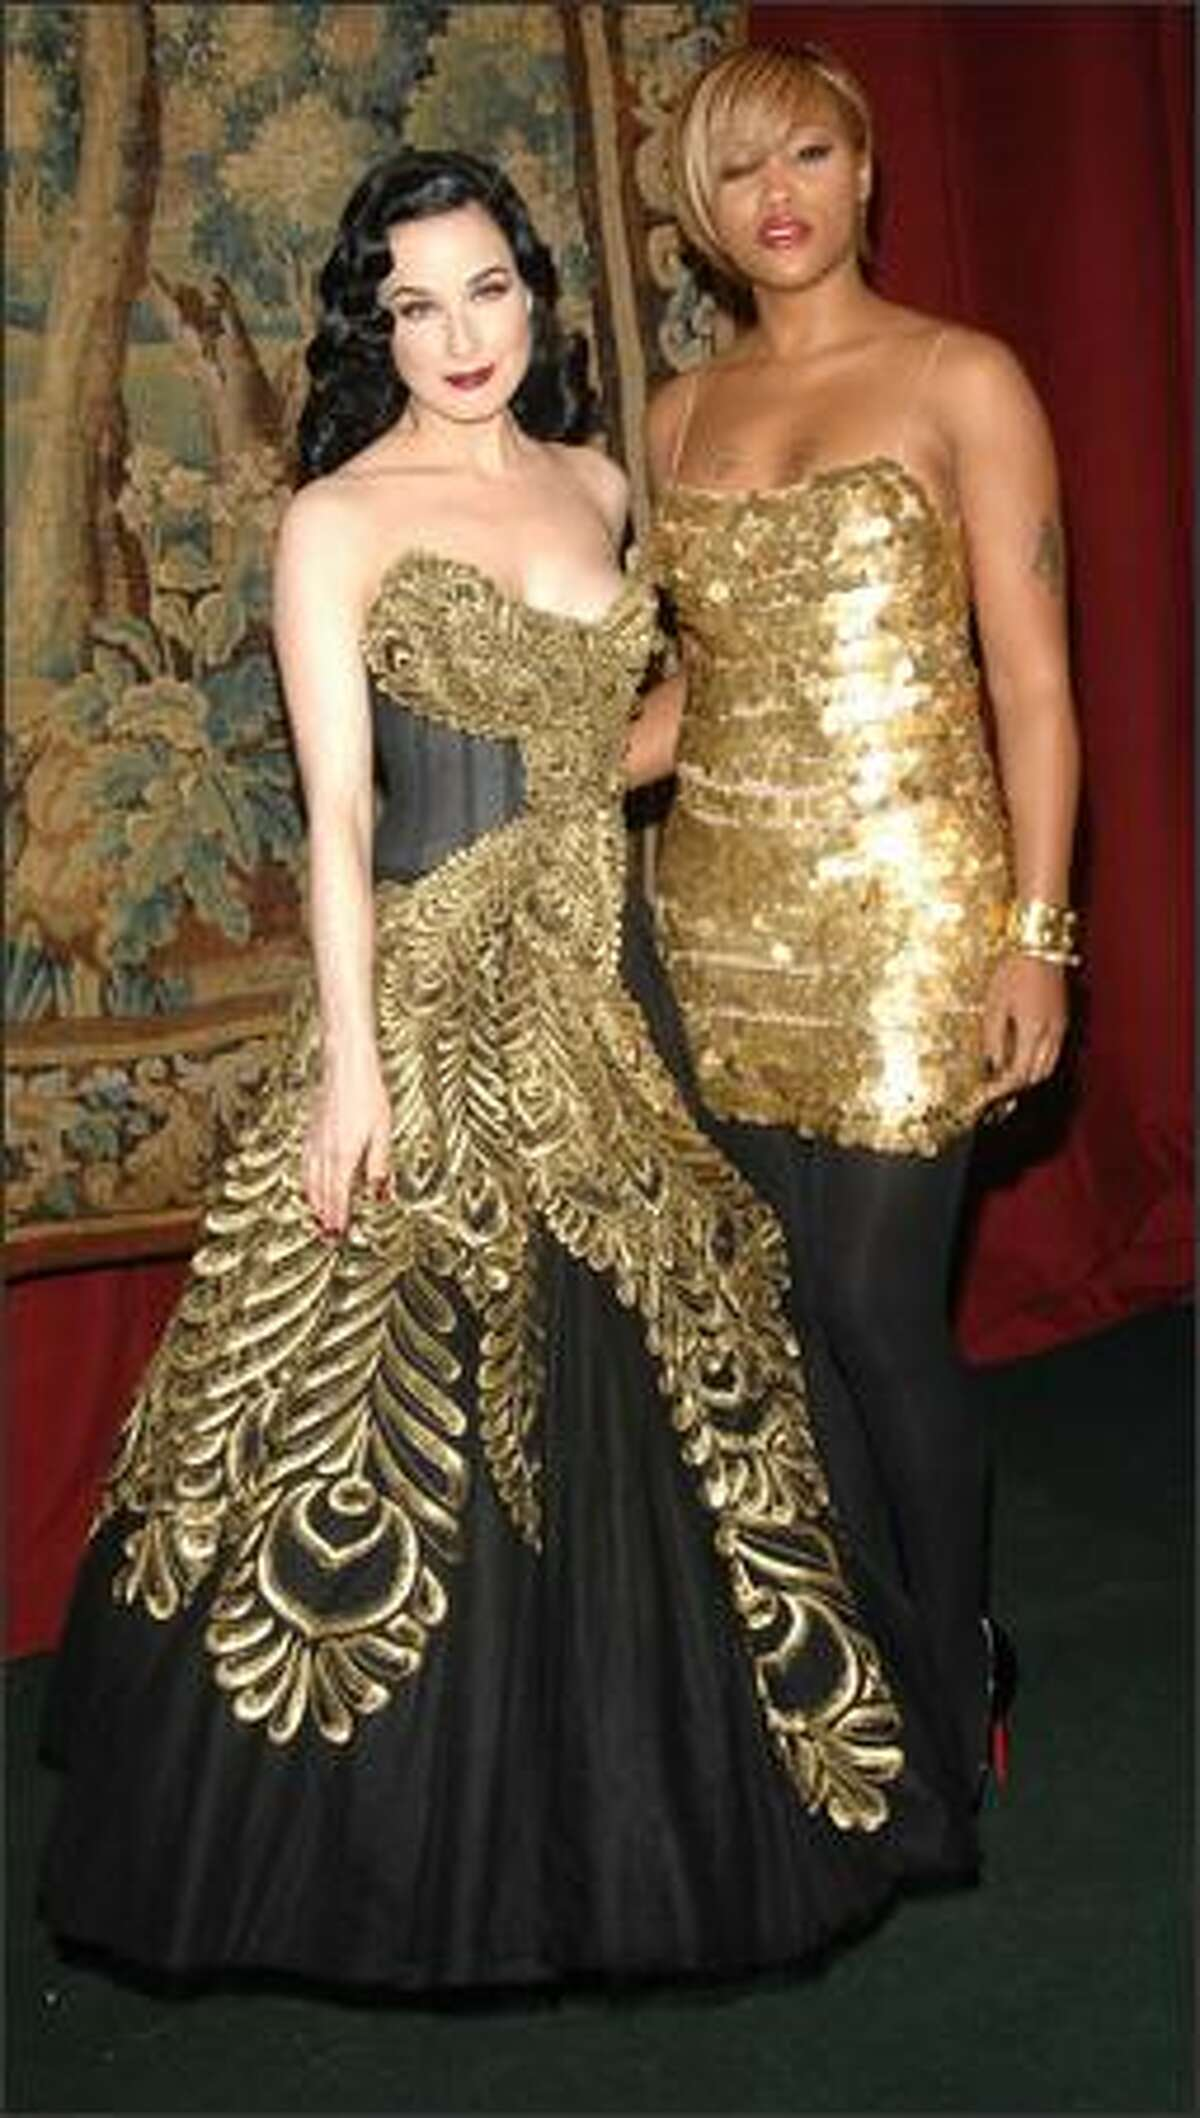 Performance artist Dita Von Teese (left) and musician Eve.